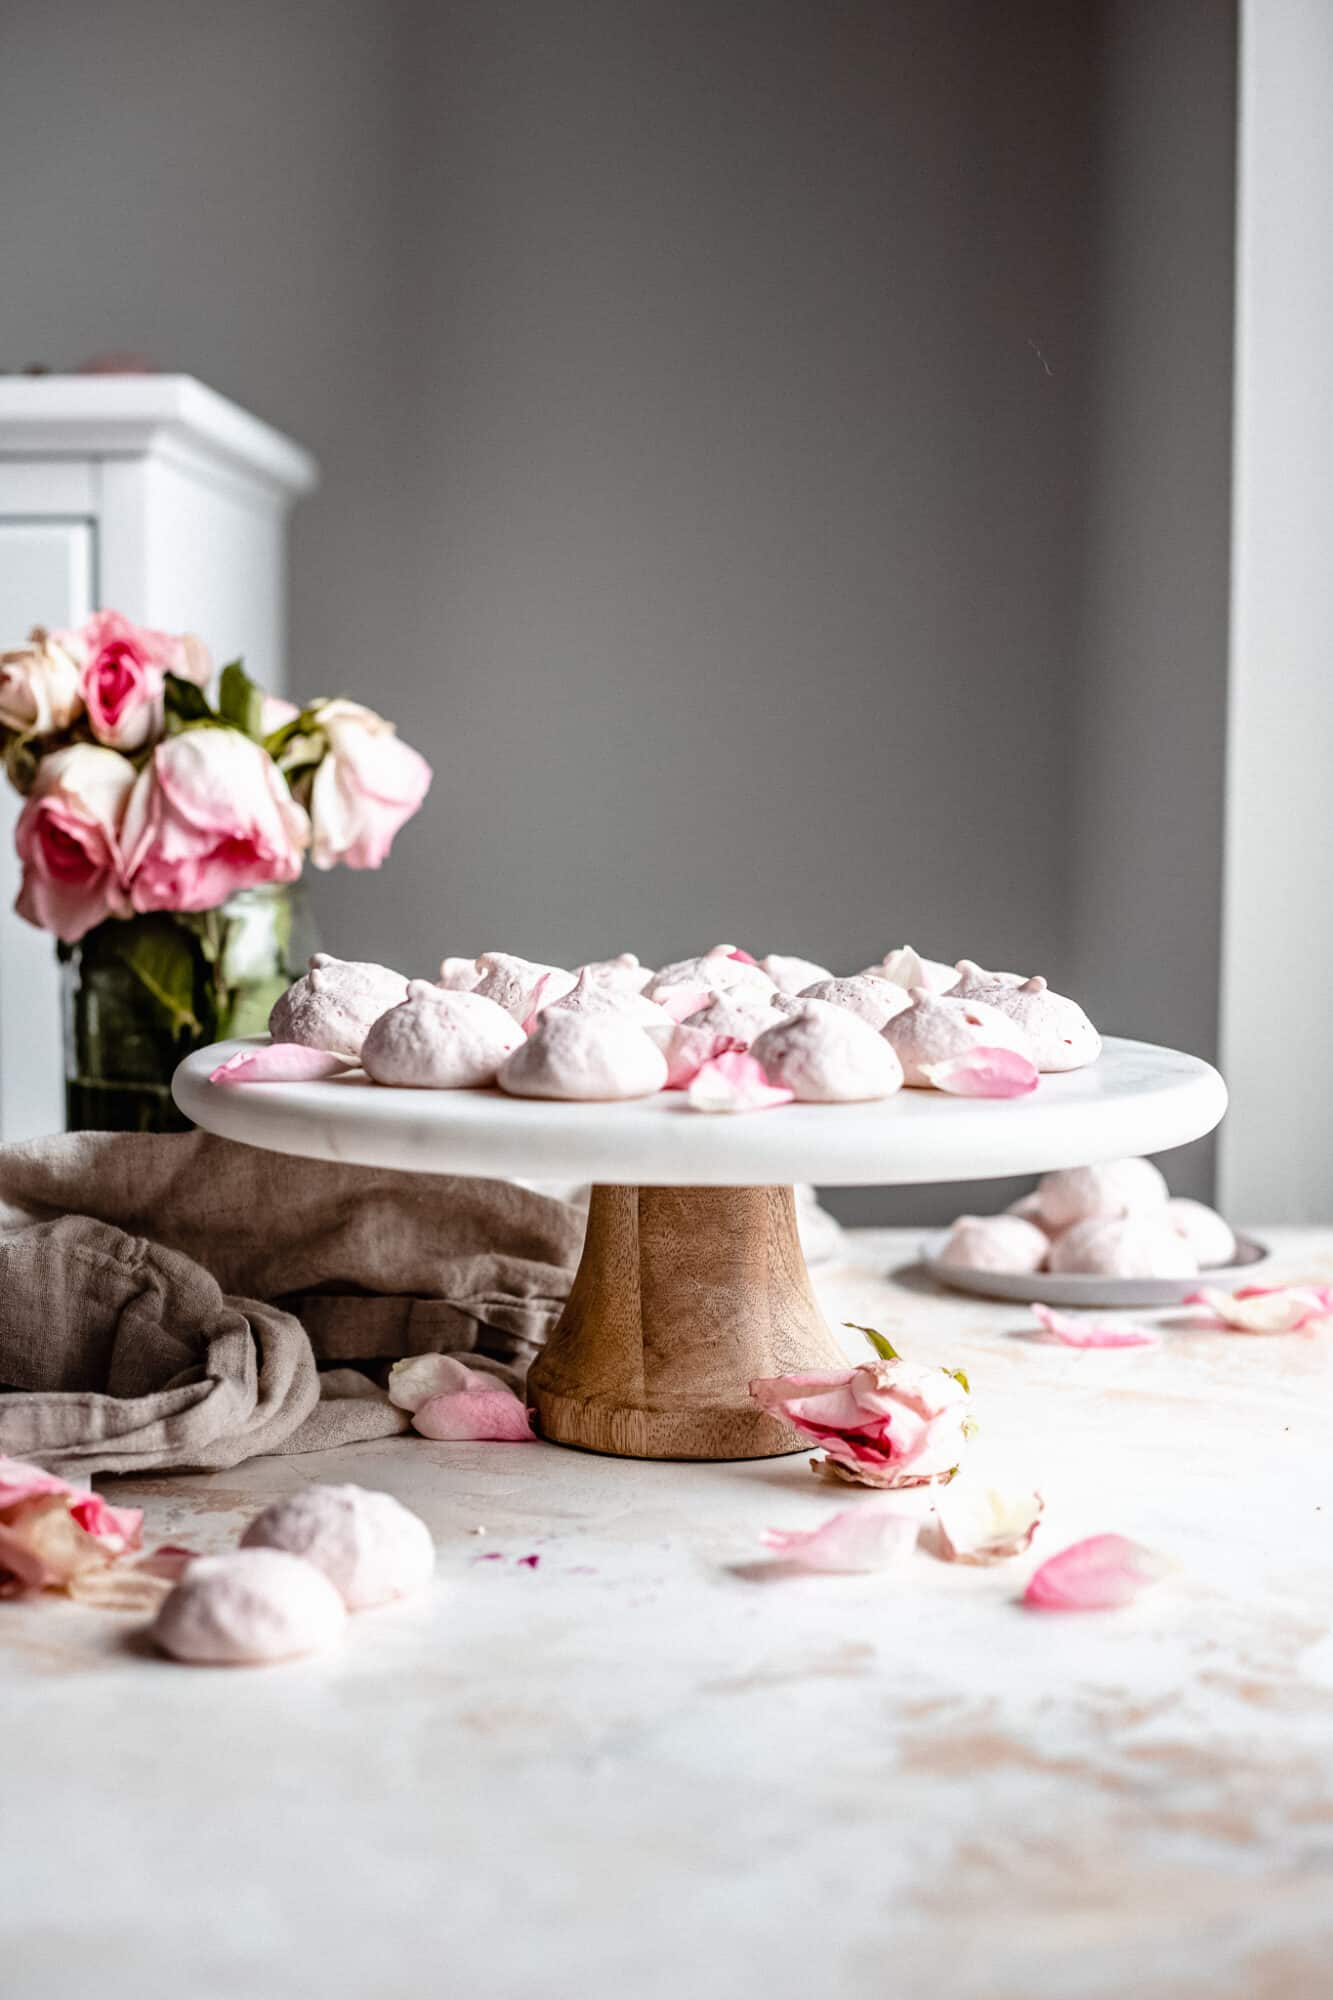 cake stand with meringue cookies on top